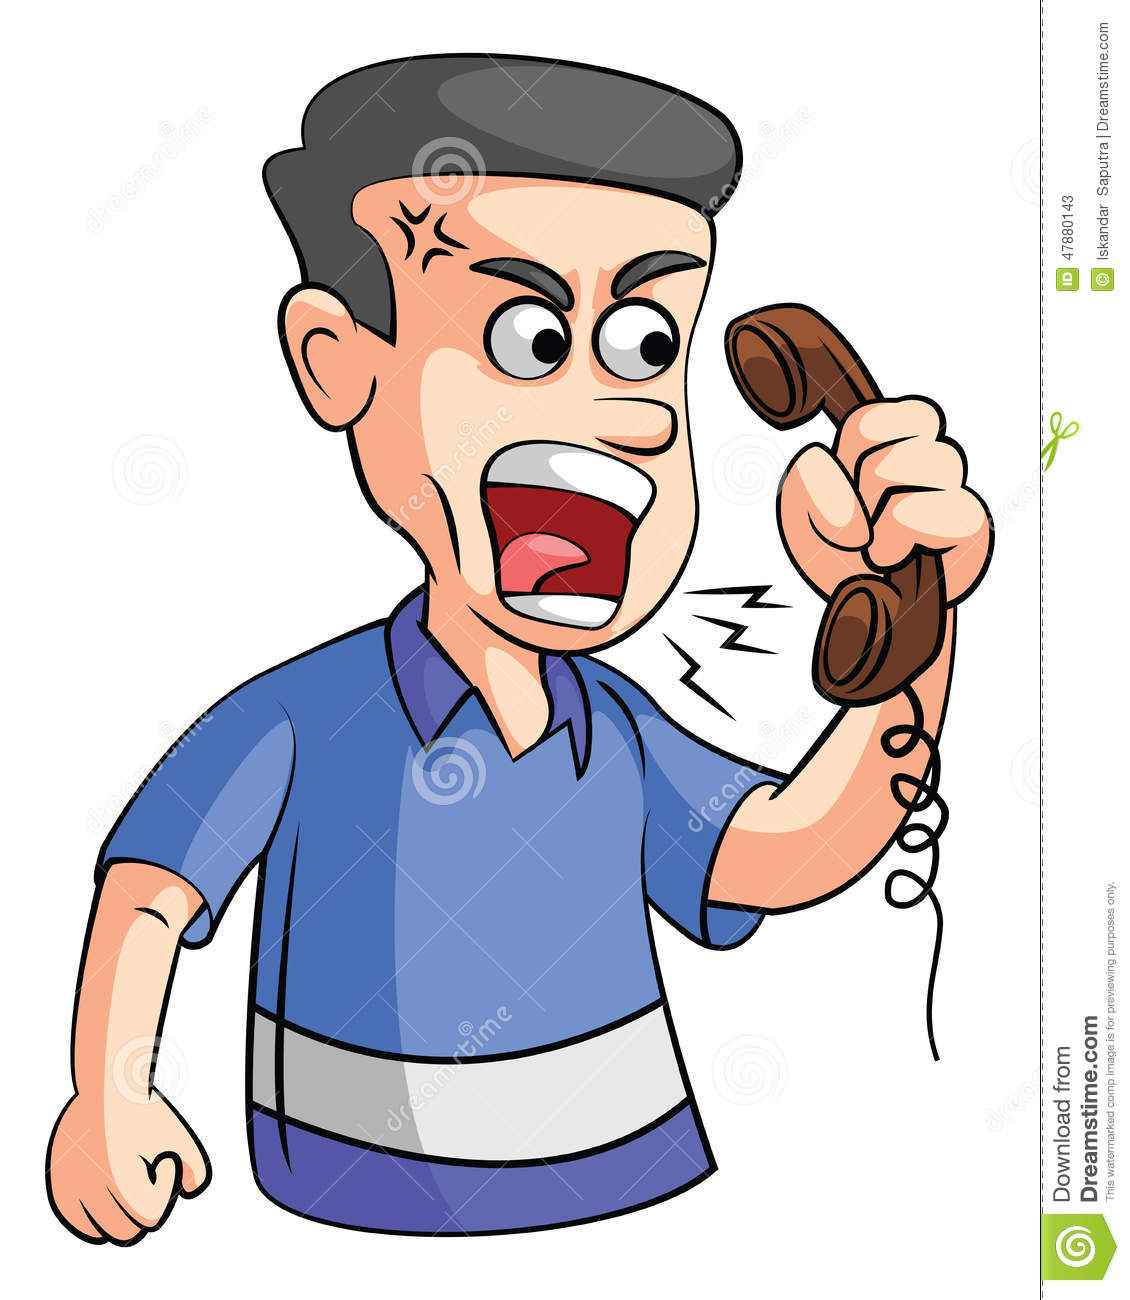 Man Angry on phone stock vector. Image of vector, angry ... Frustrated Person On Phone